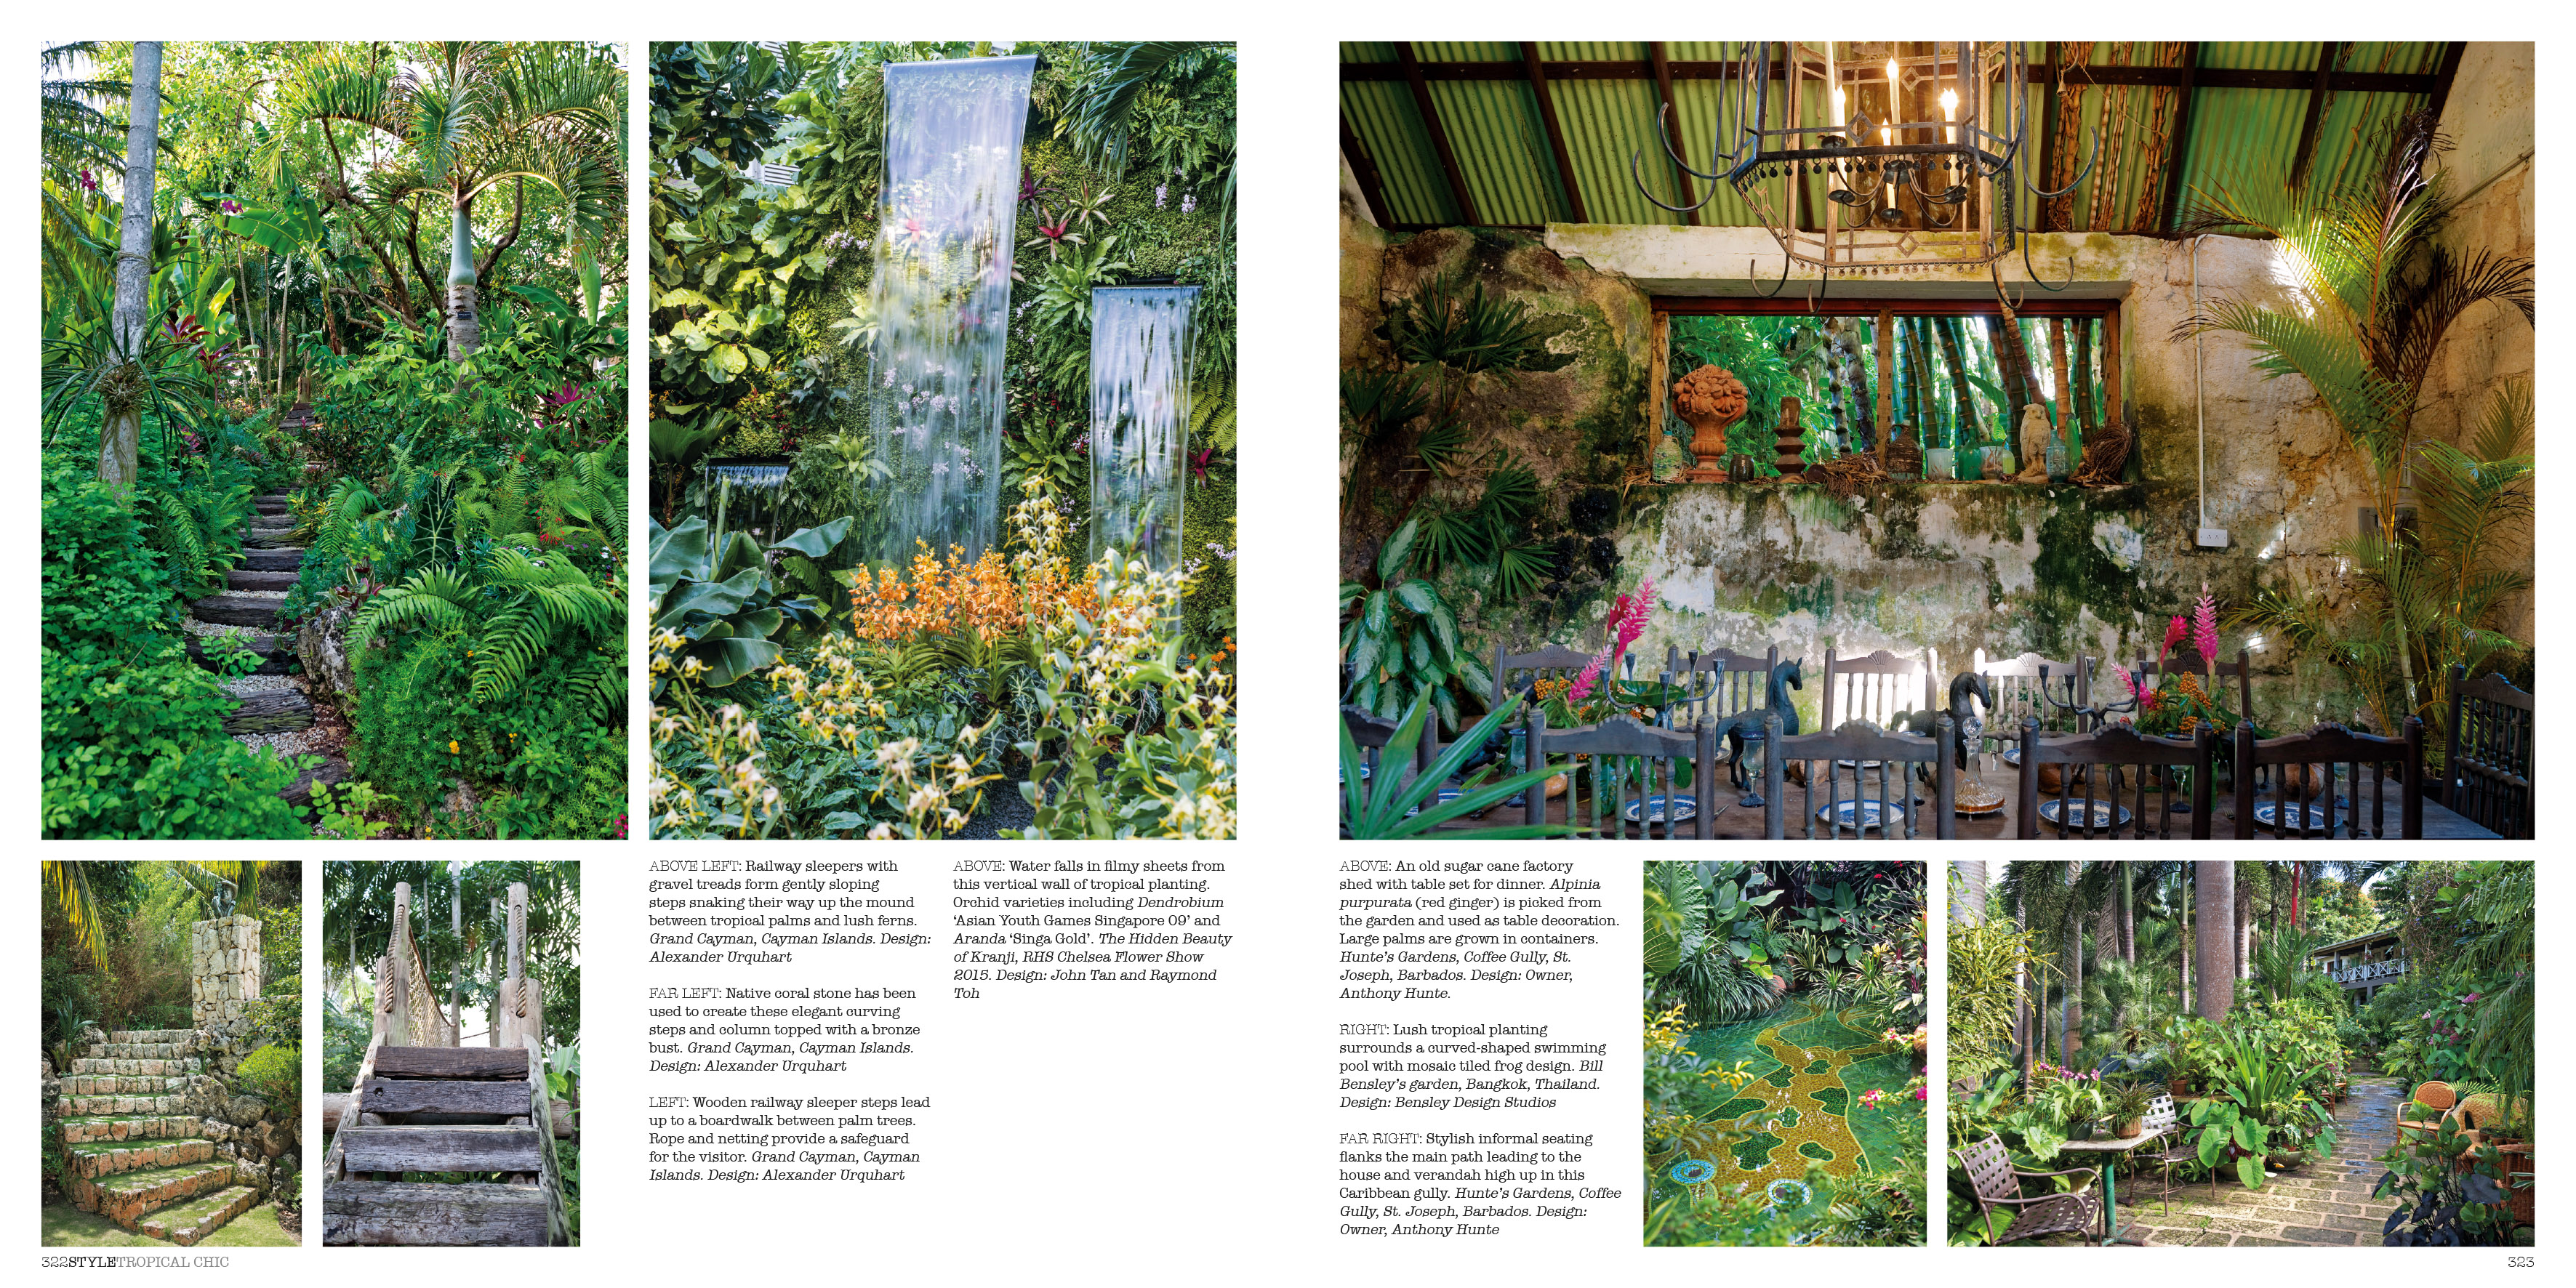 The Garden Source spread 5